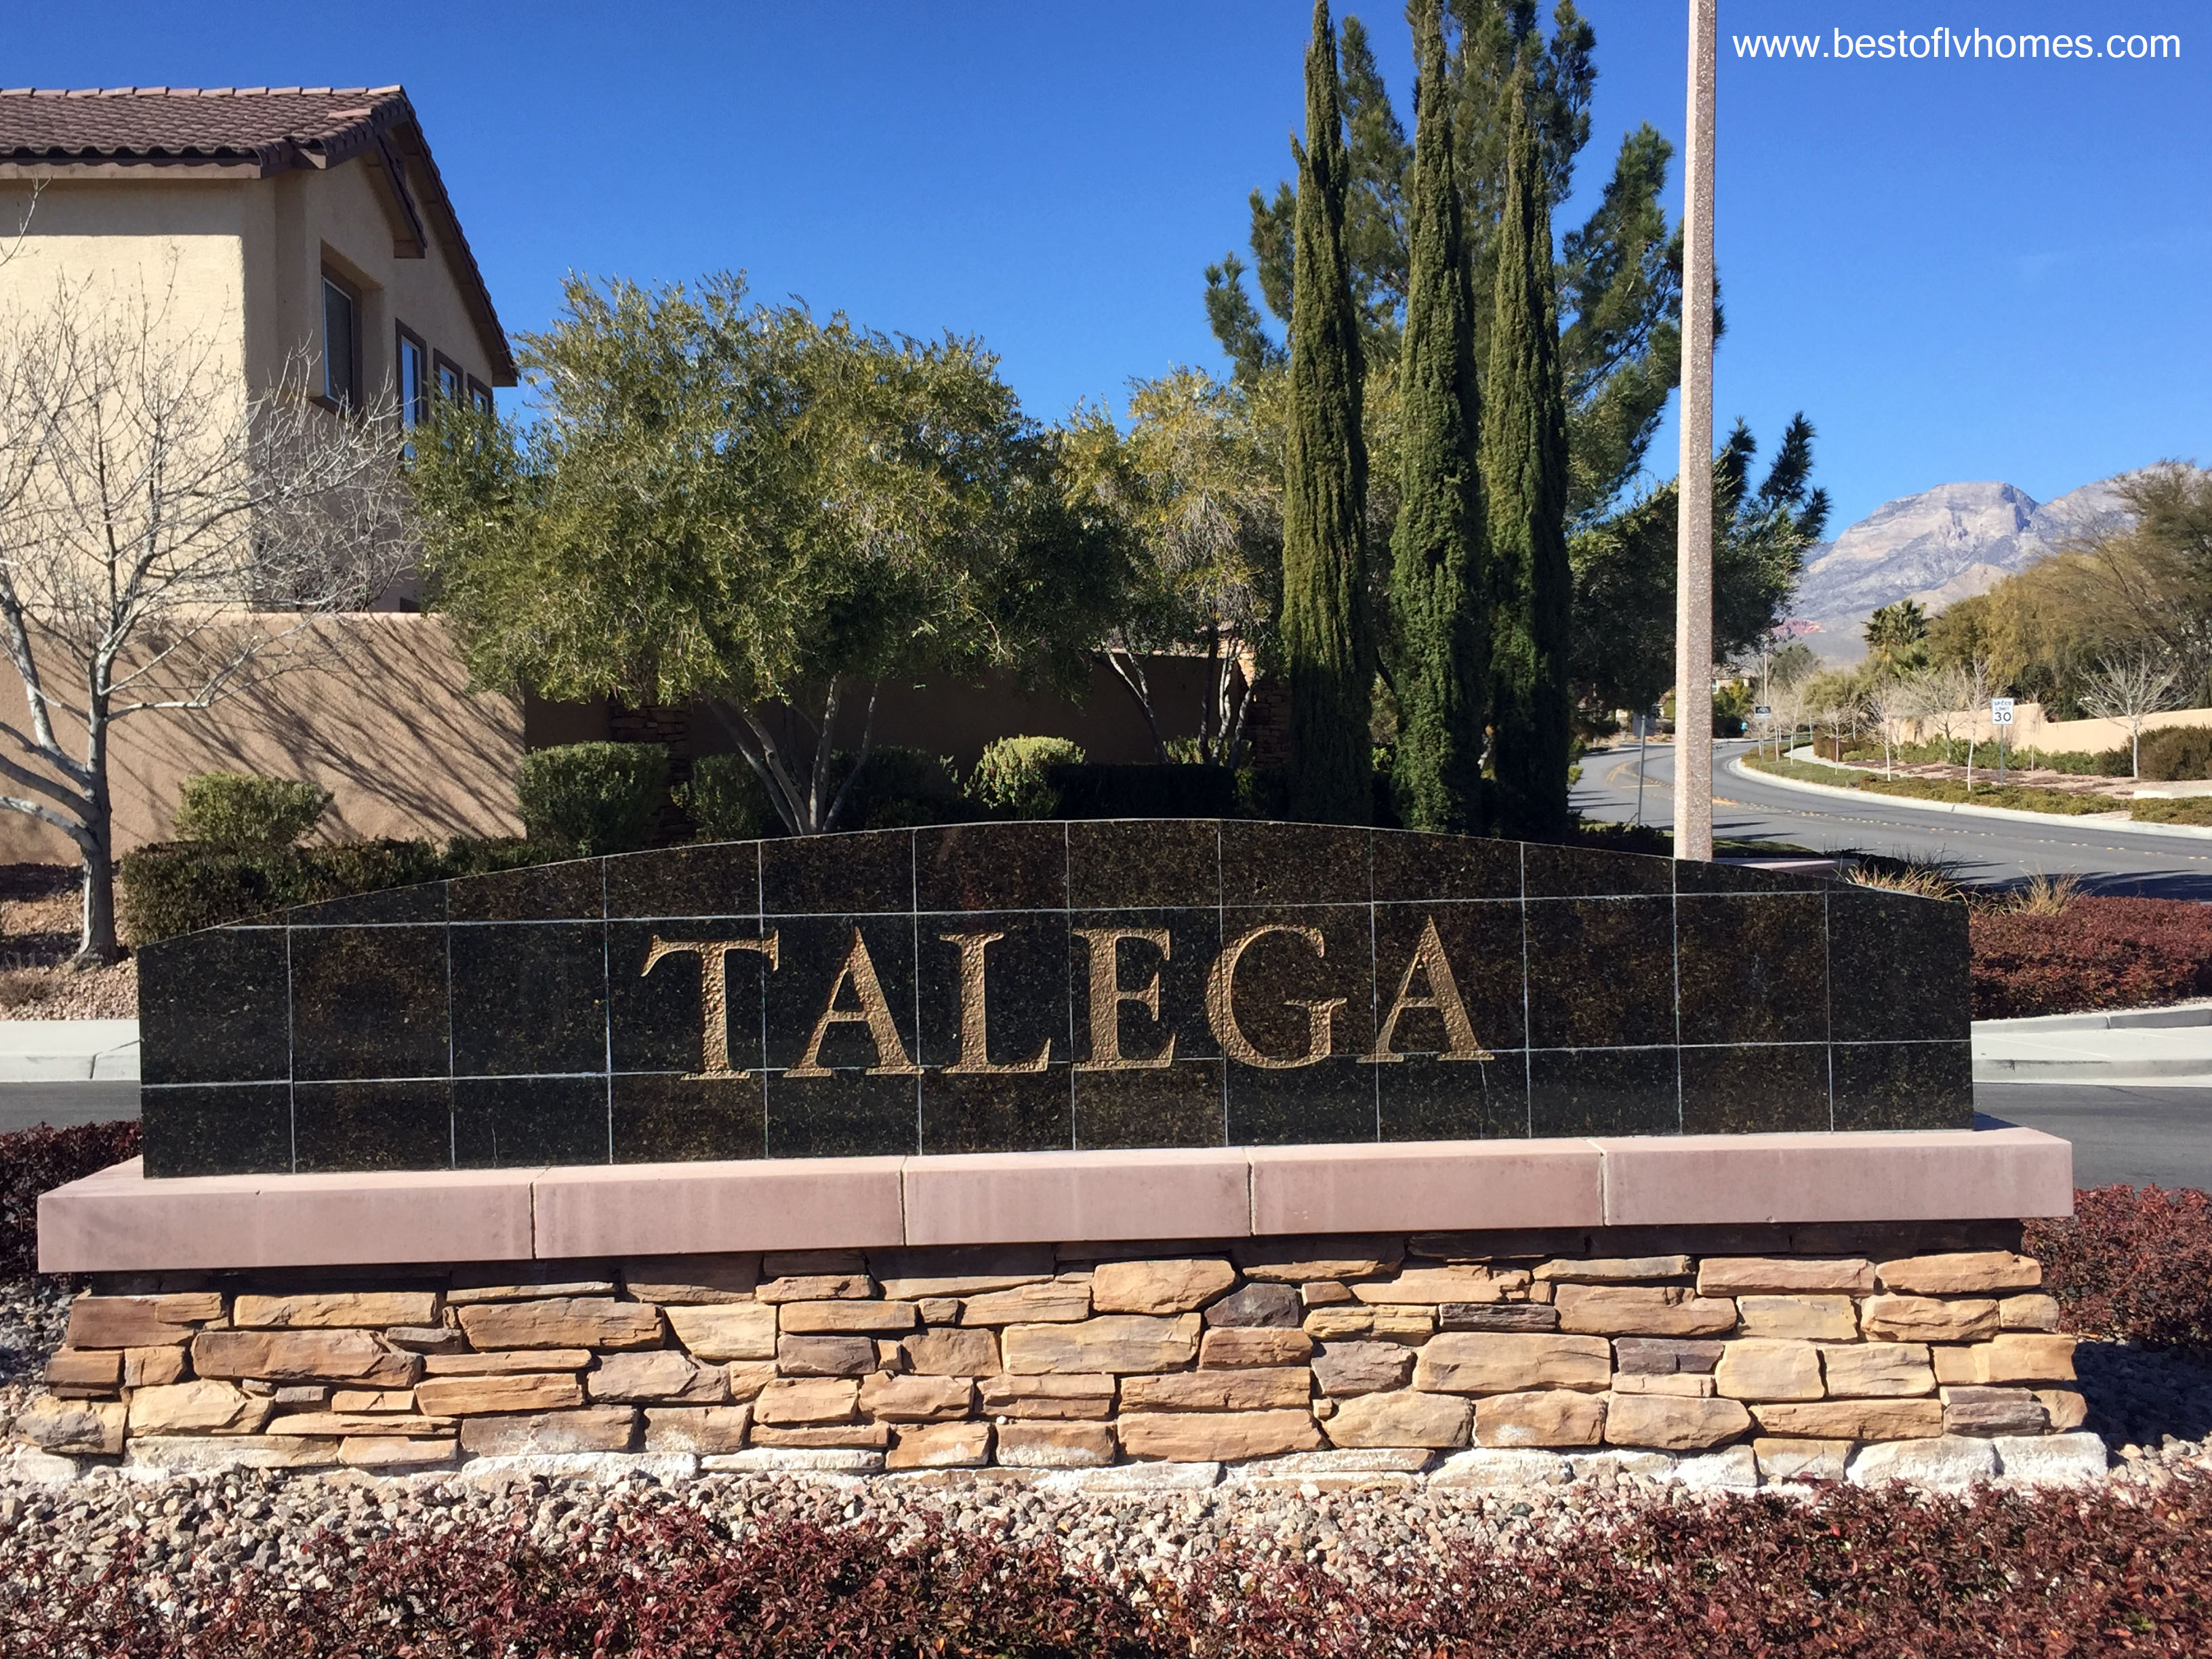 Talega Summerlin The Vistas Las Vegas Real Estate